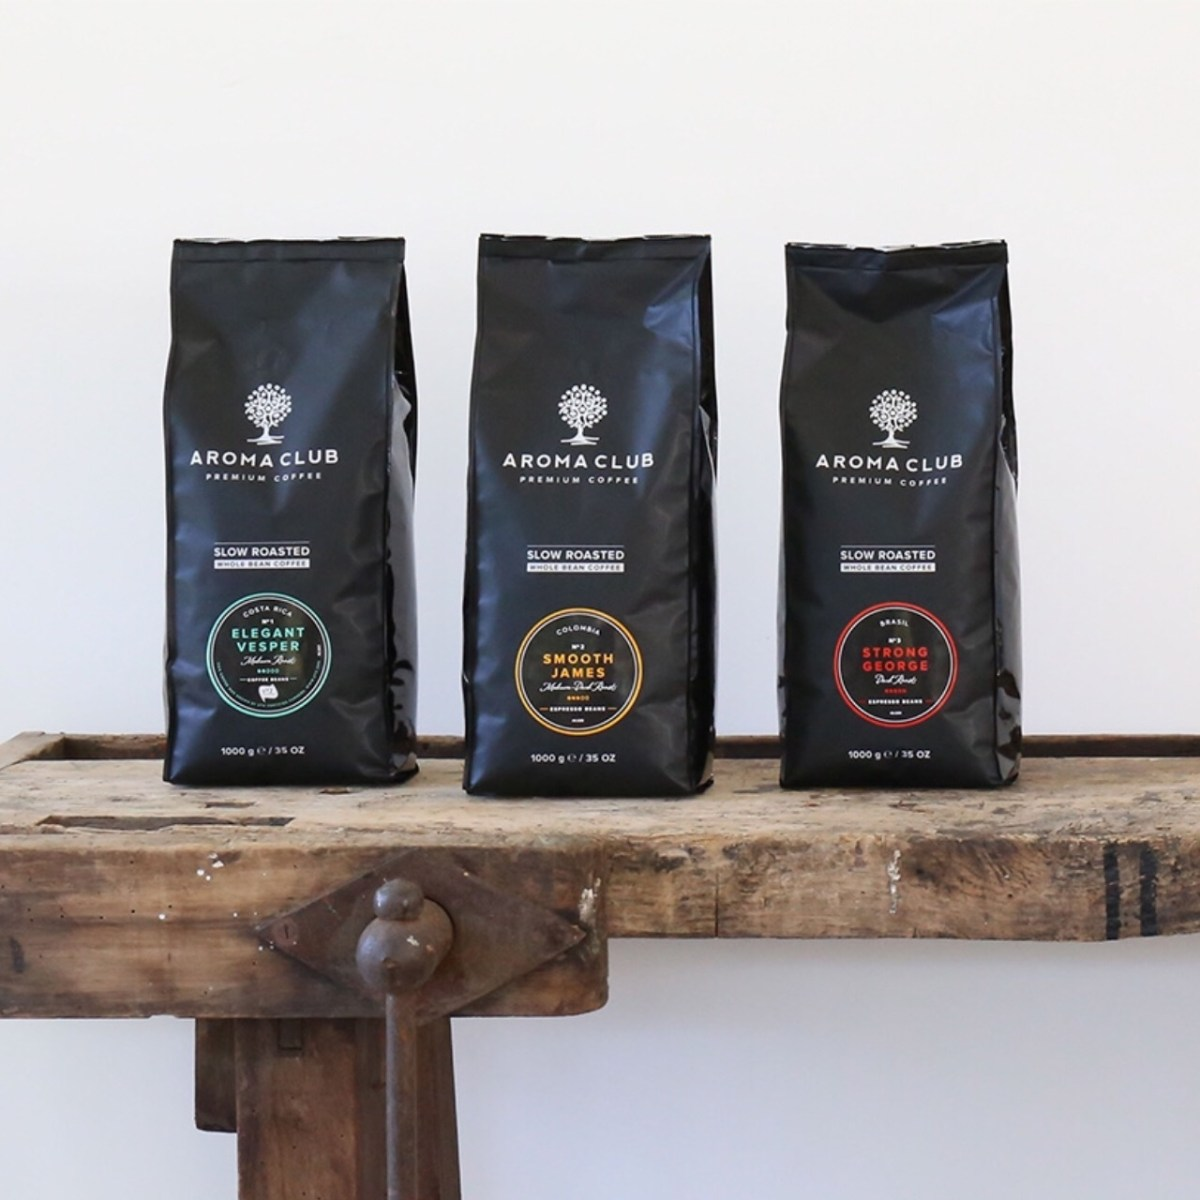 Aroma Club 3 blends